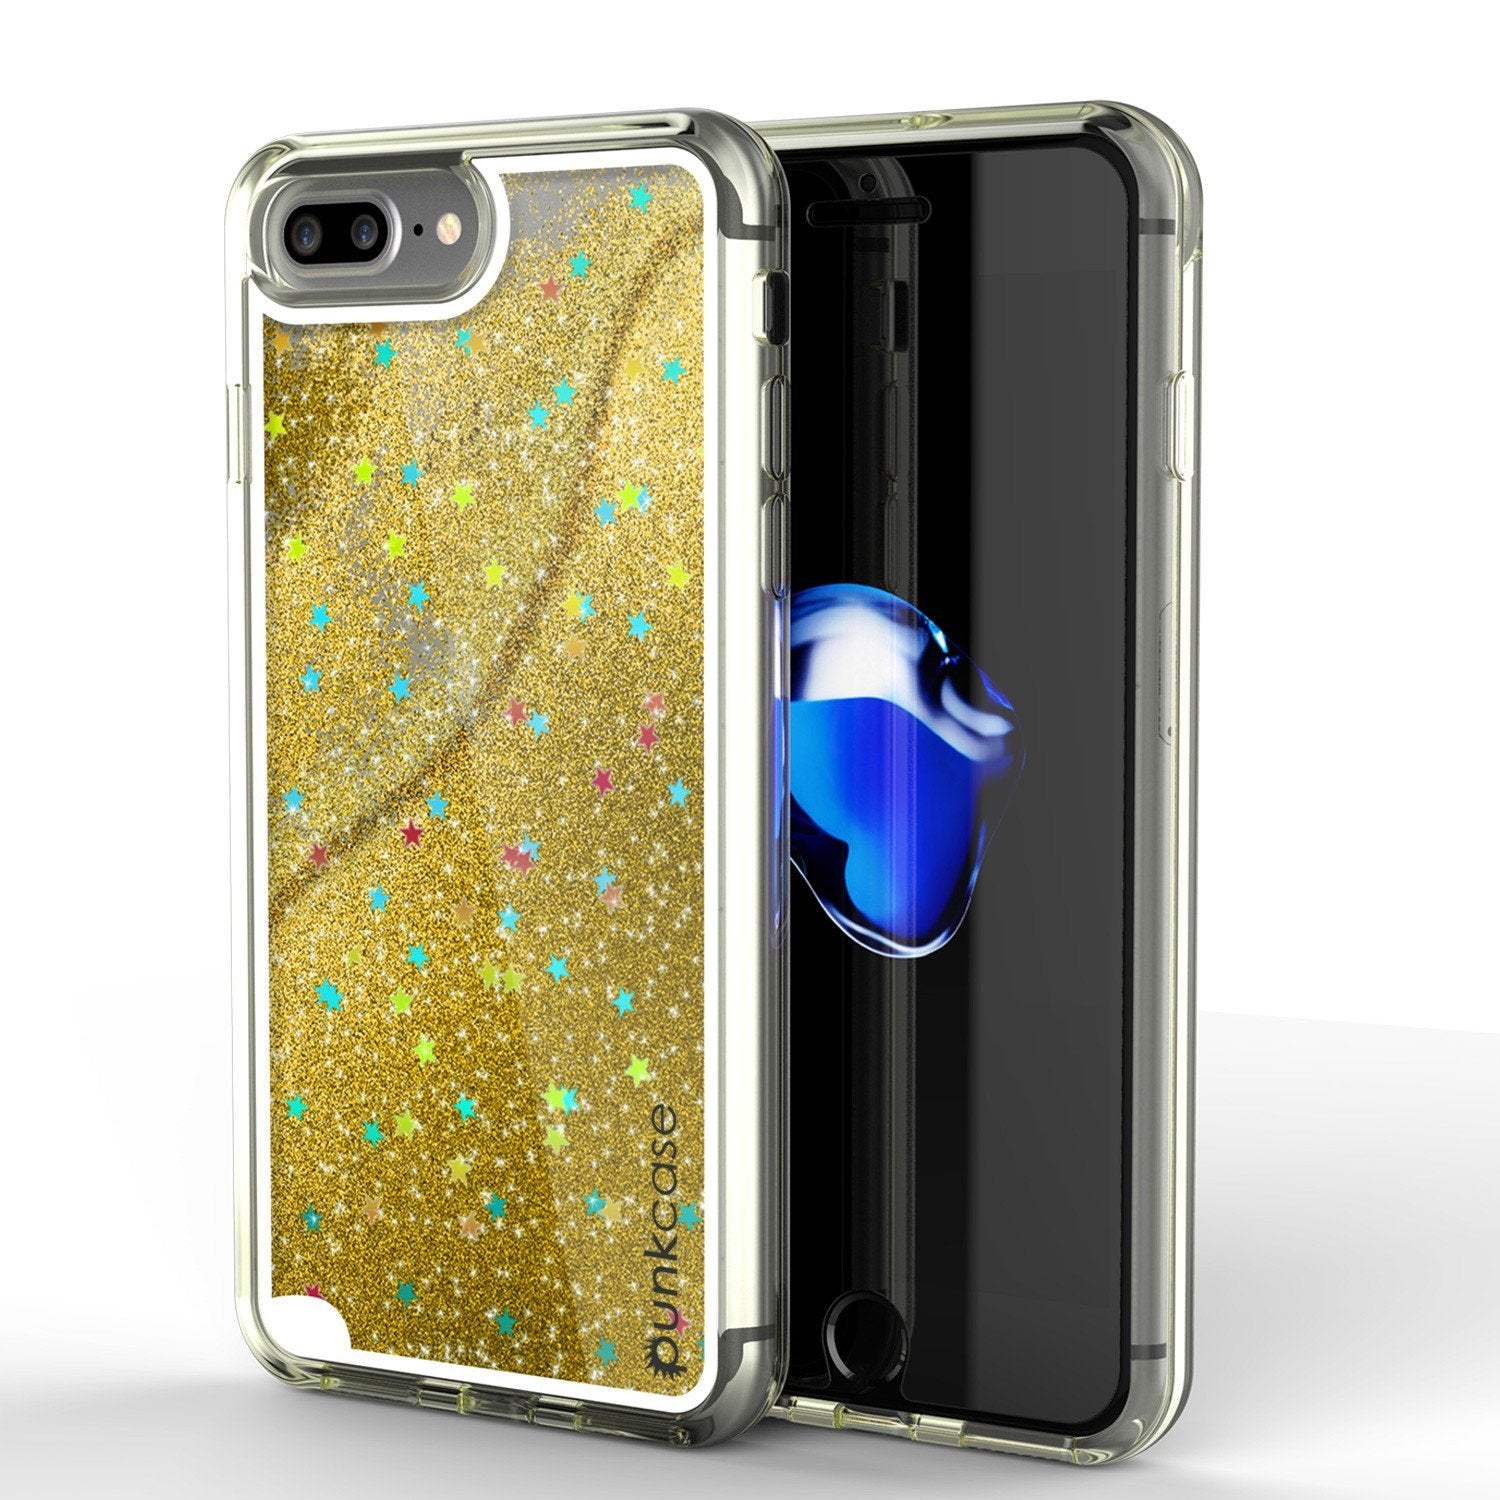 iPhone 8+ Plus Case Punkcase Liquid Gold, Floating Glitter Cover Series